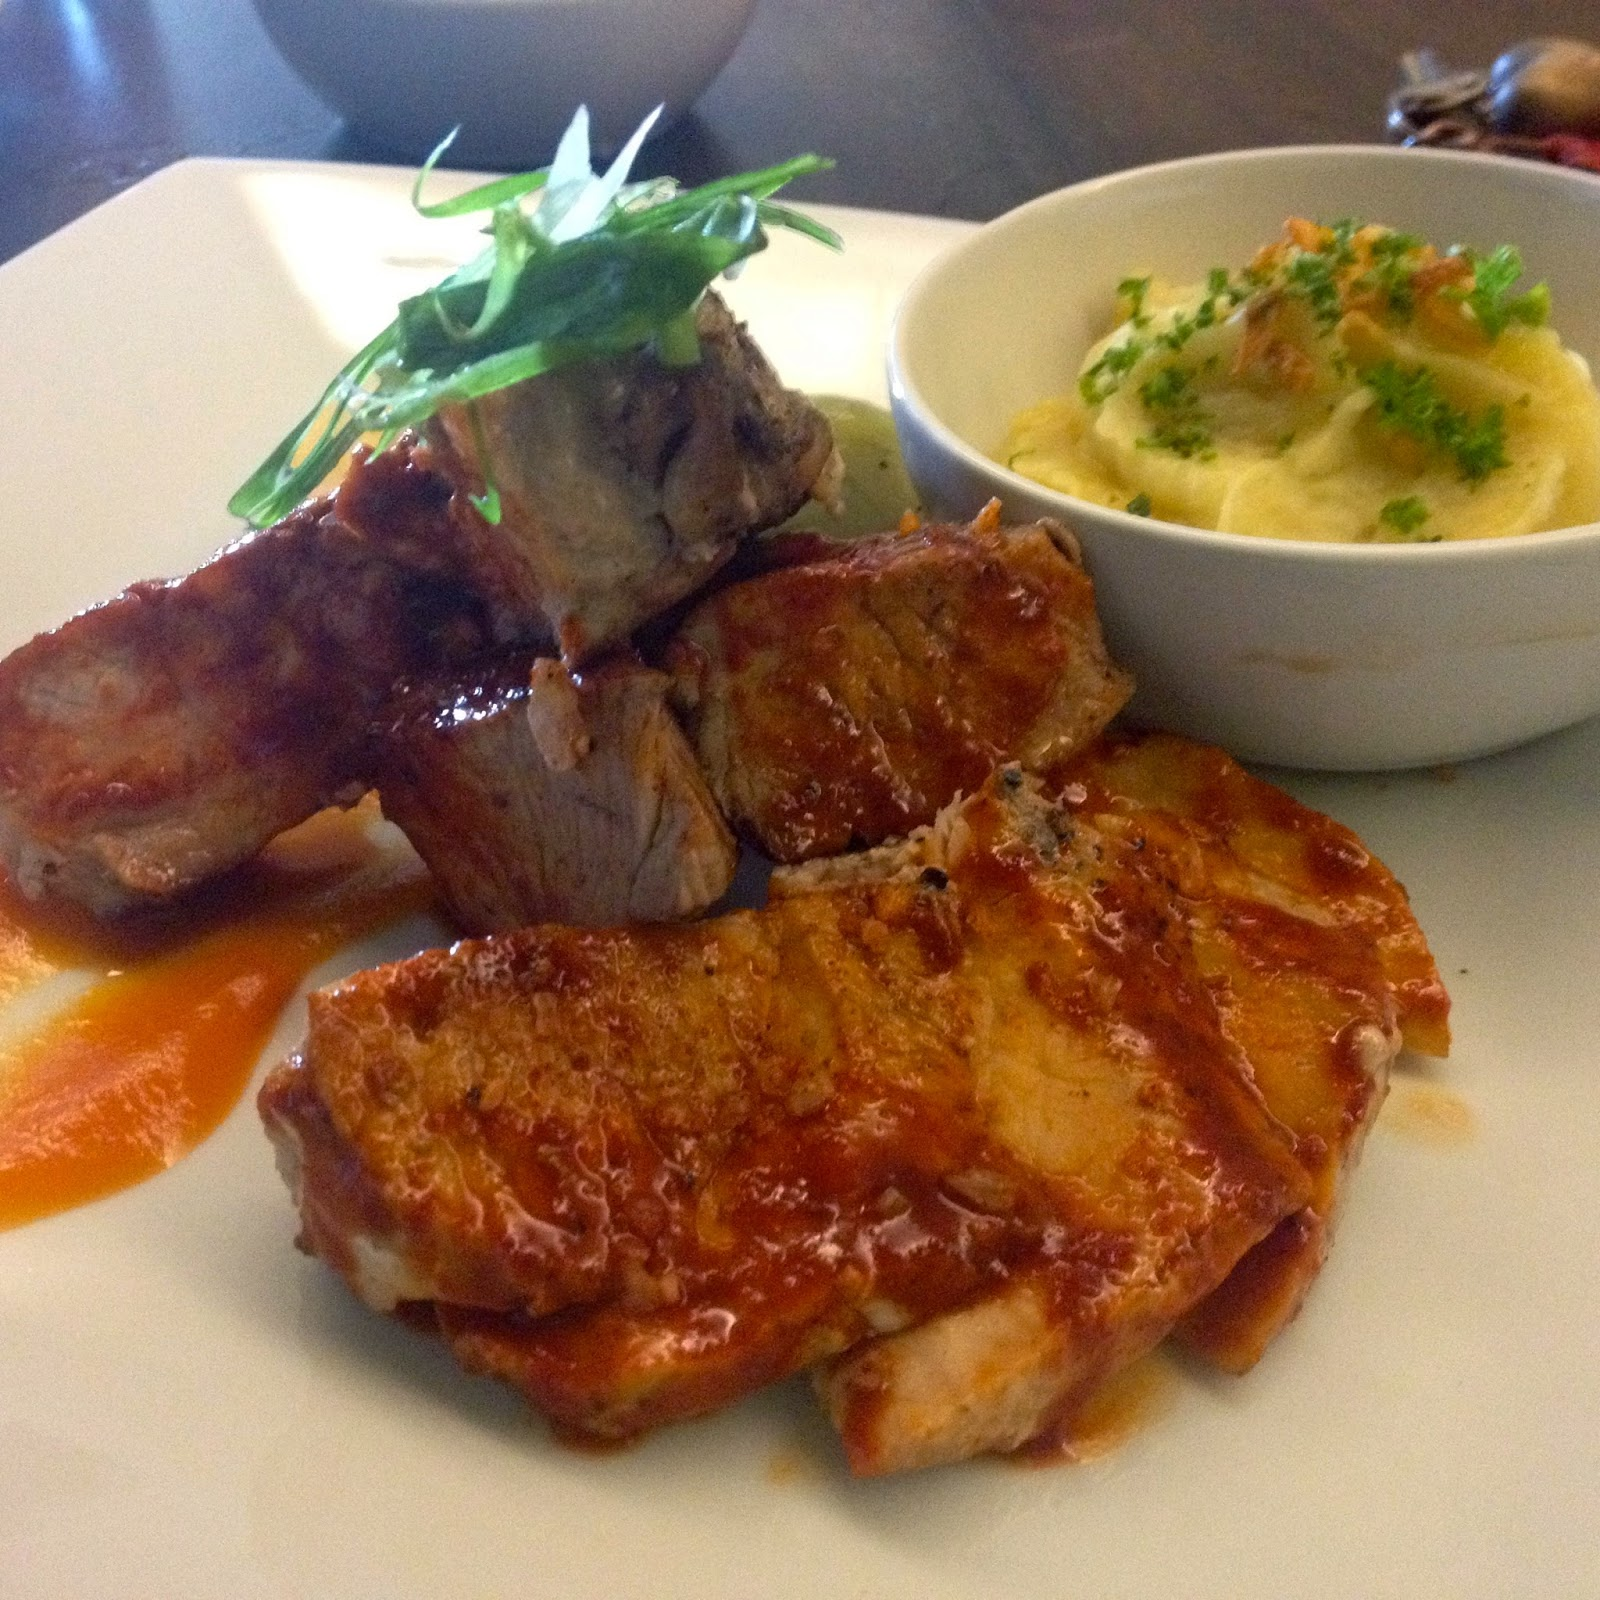 Asturias Pork at Carnivore Restaurant Cebu